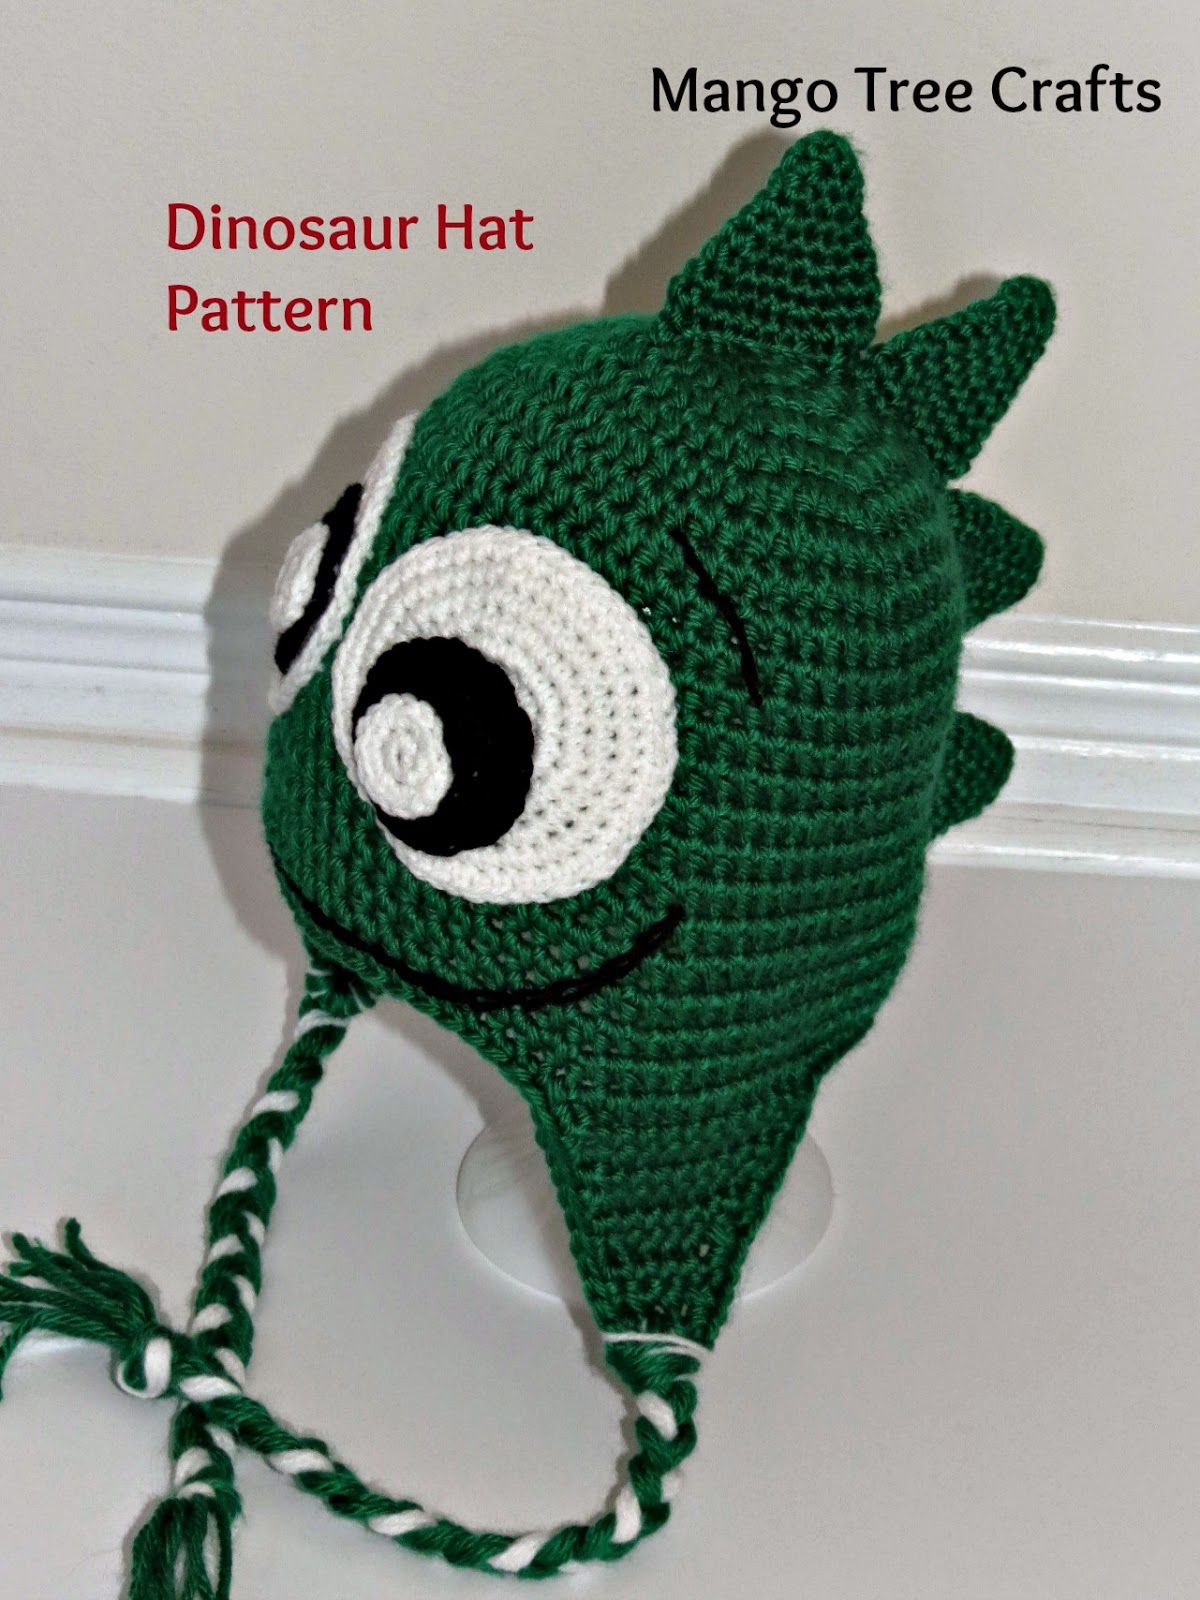 Free Crochet Pattern For Dinosaur Beanie : Mango Tree Crafts: Crochet Dinosaur Hat Pattern